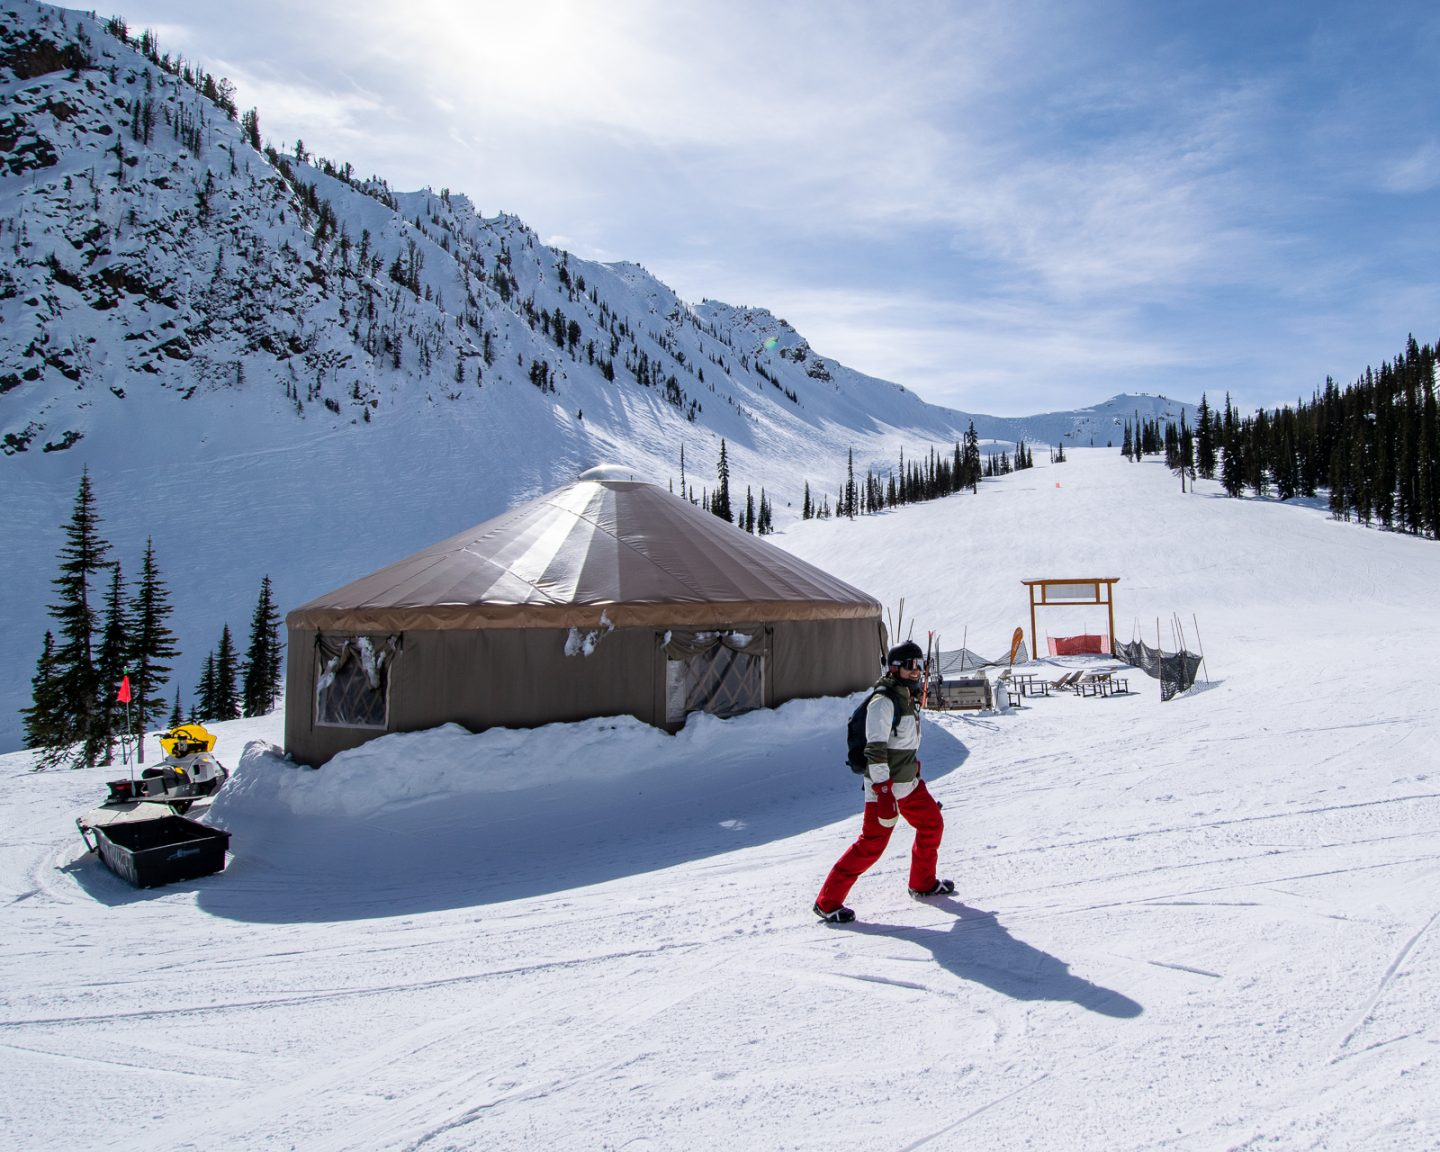 Kicking Horse ski resort restaurant